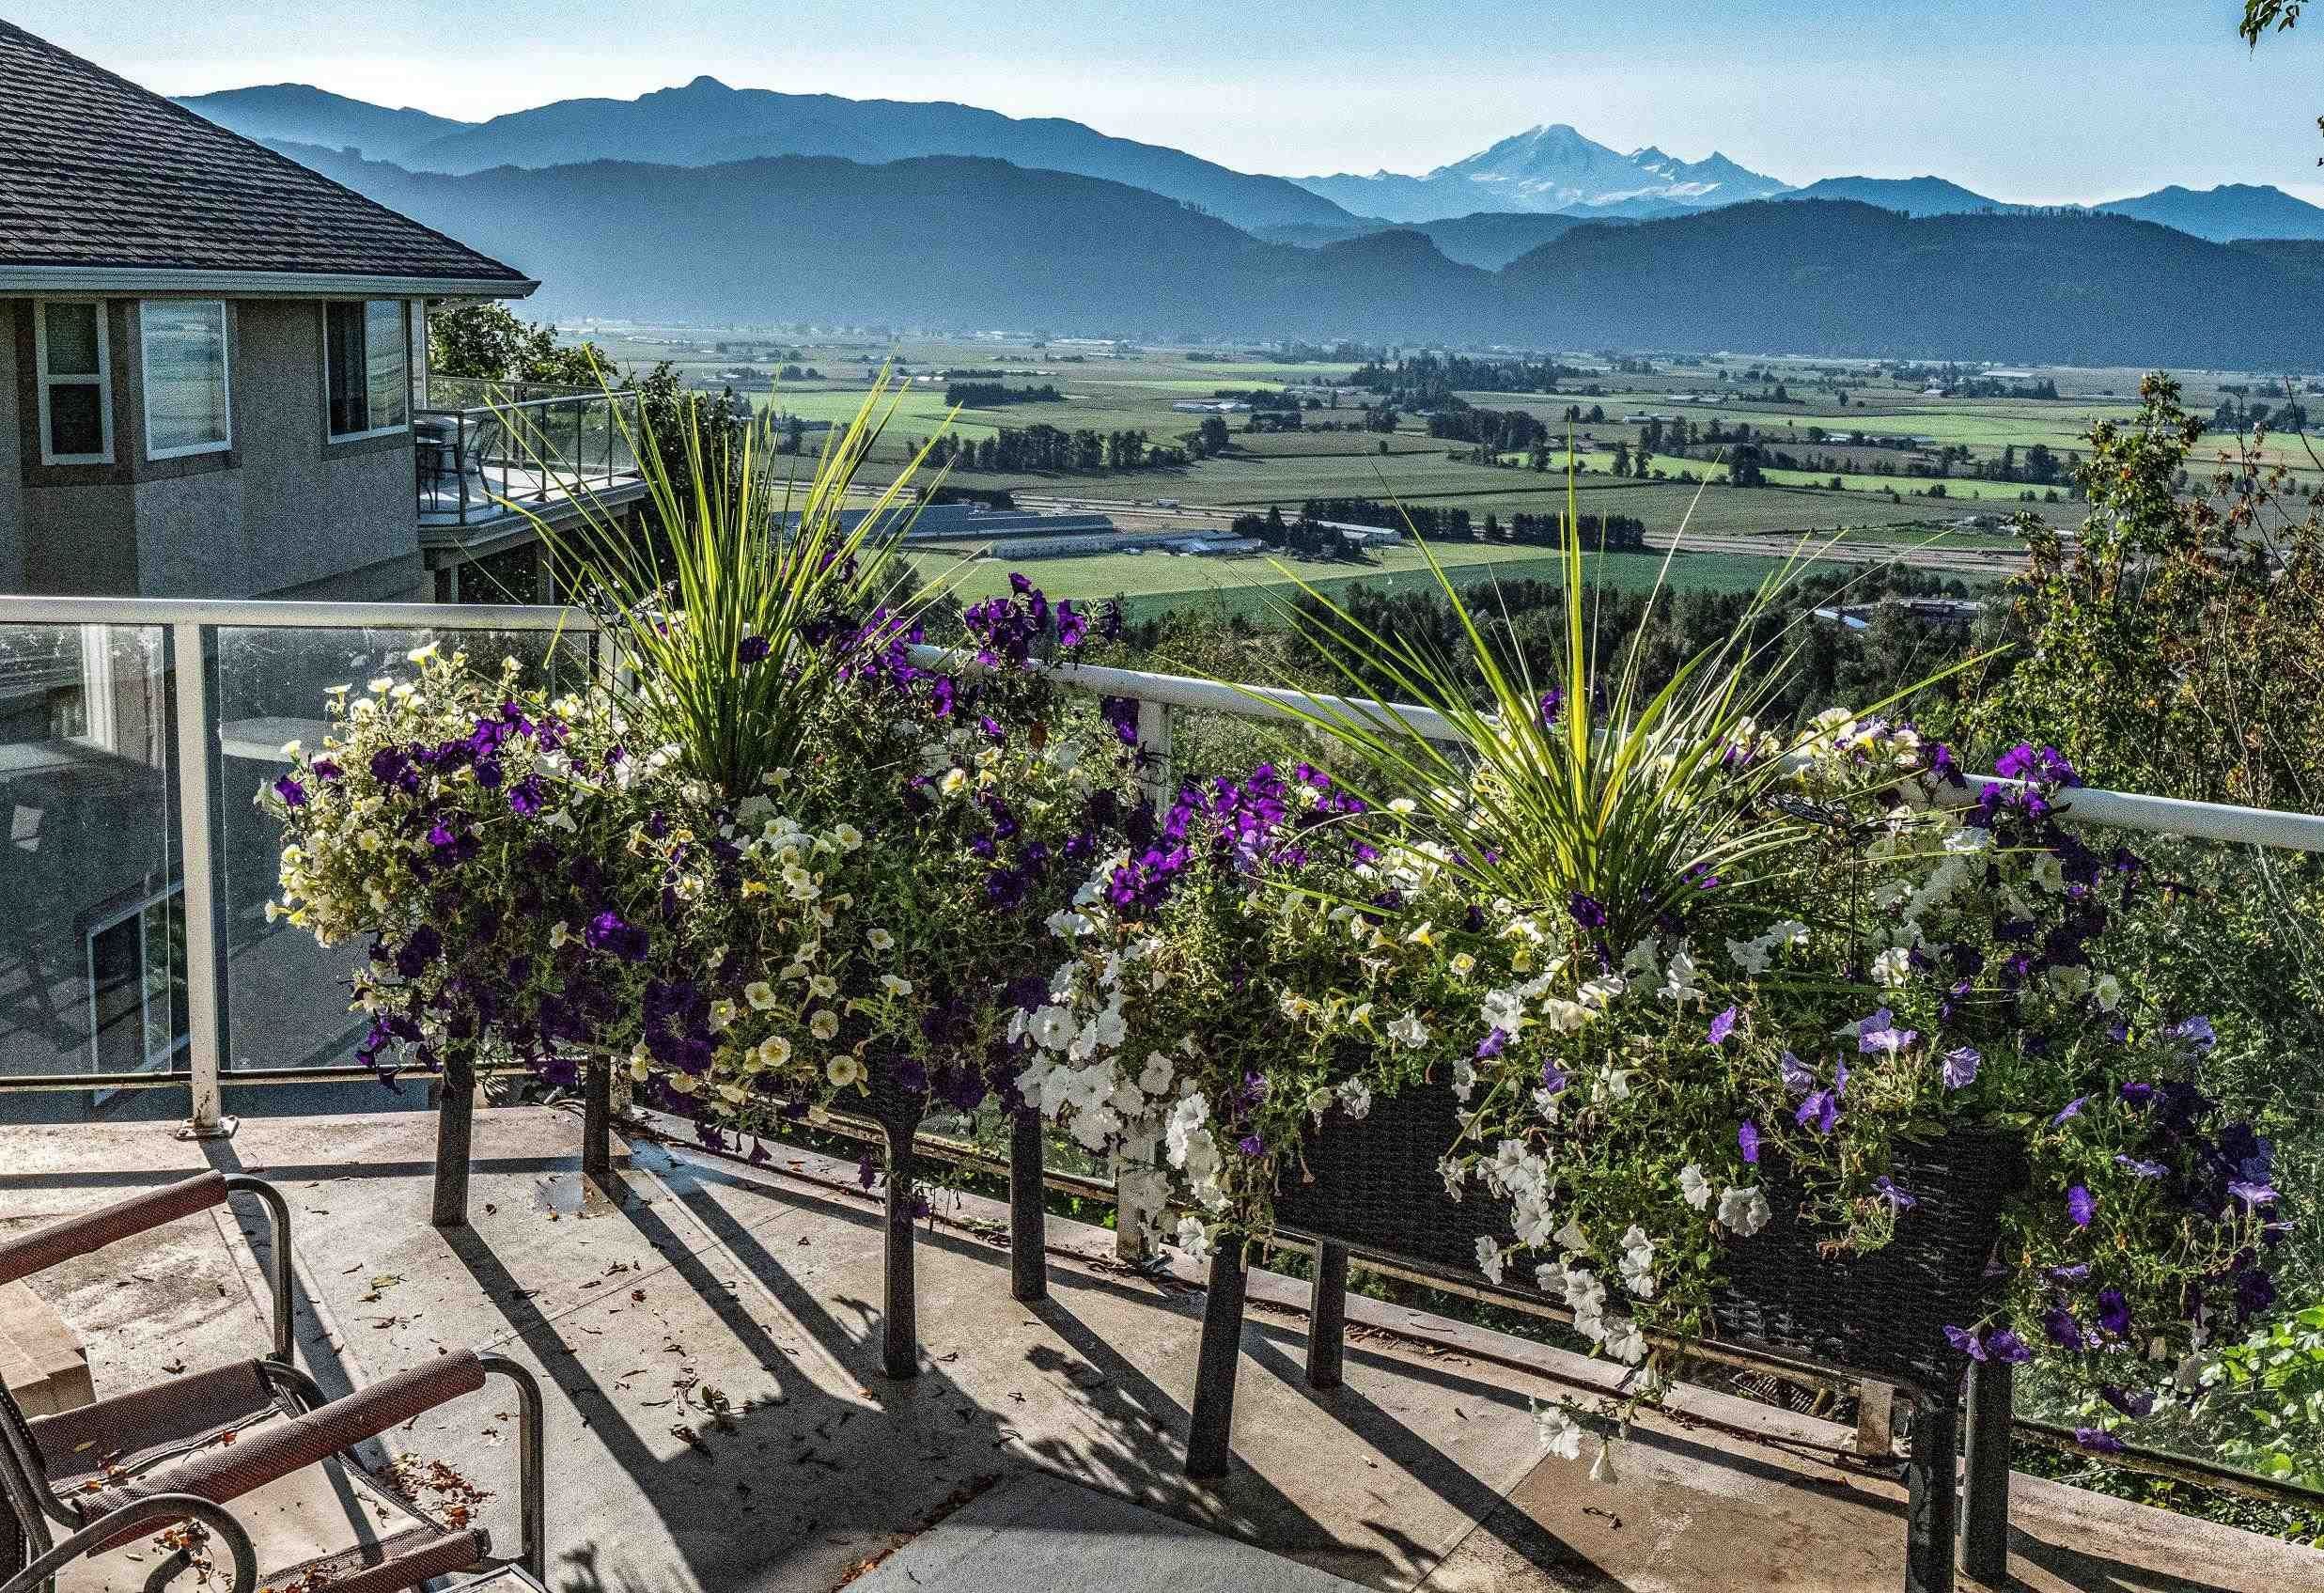 """Main Photo: 35942 EMPRESS Drive in Abbotsford: Abbotsford East House for sale in """"Regal Peak Estates on Sumas Mountain"""" : MLS®# R2622782"""